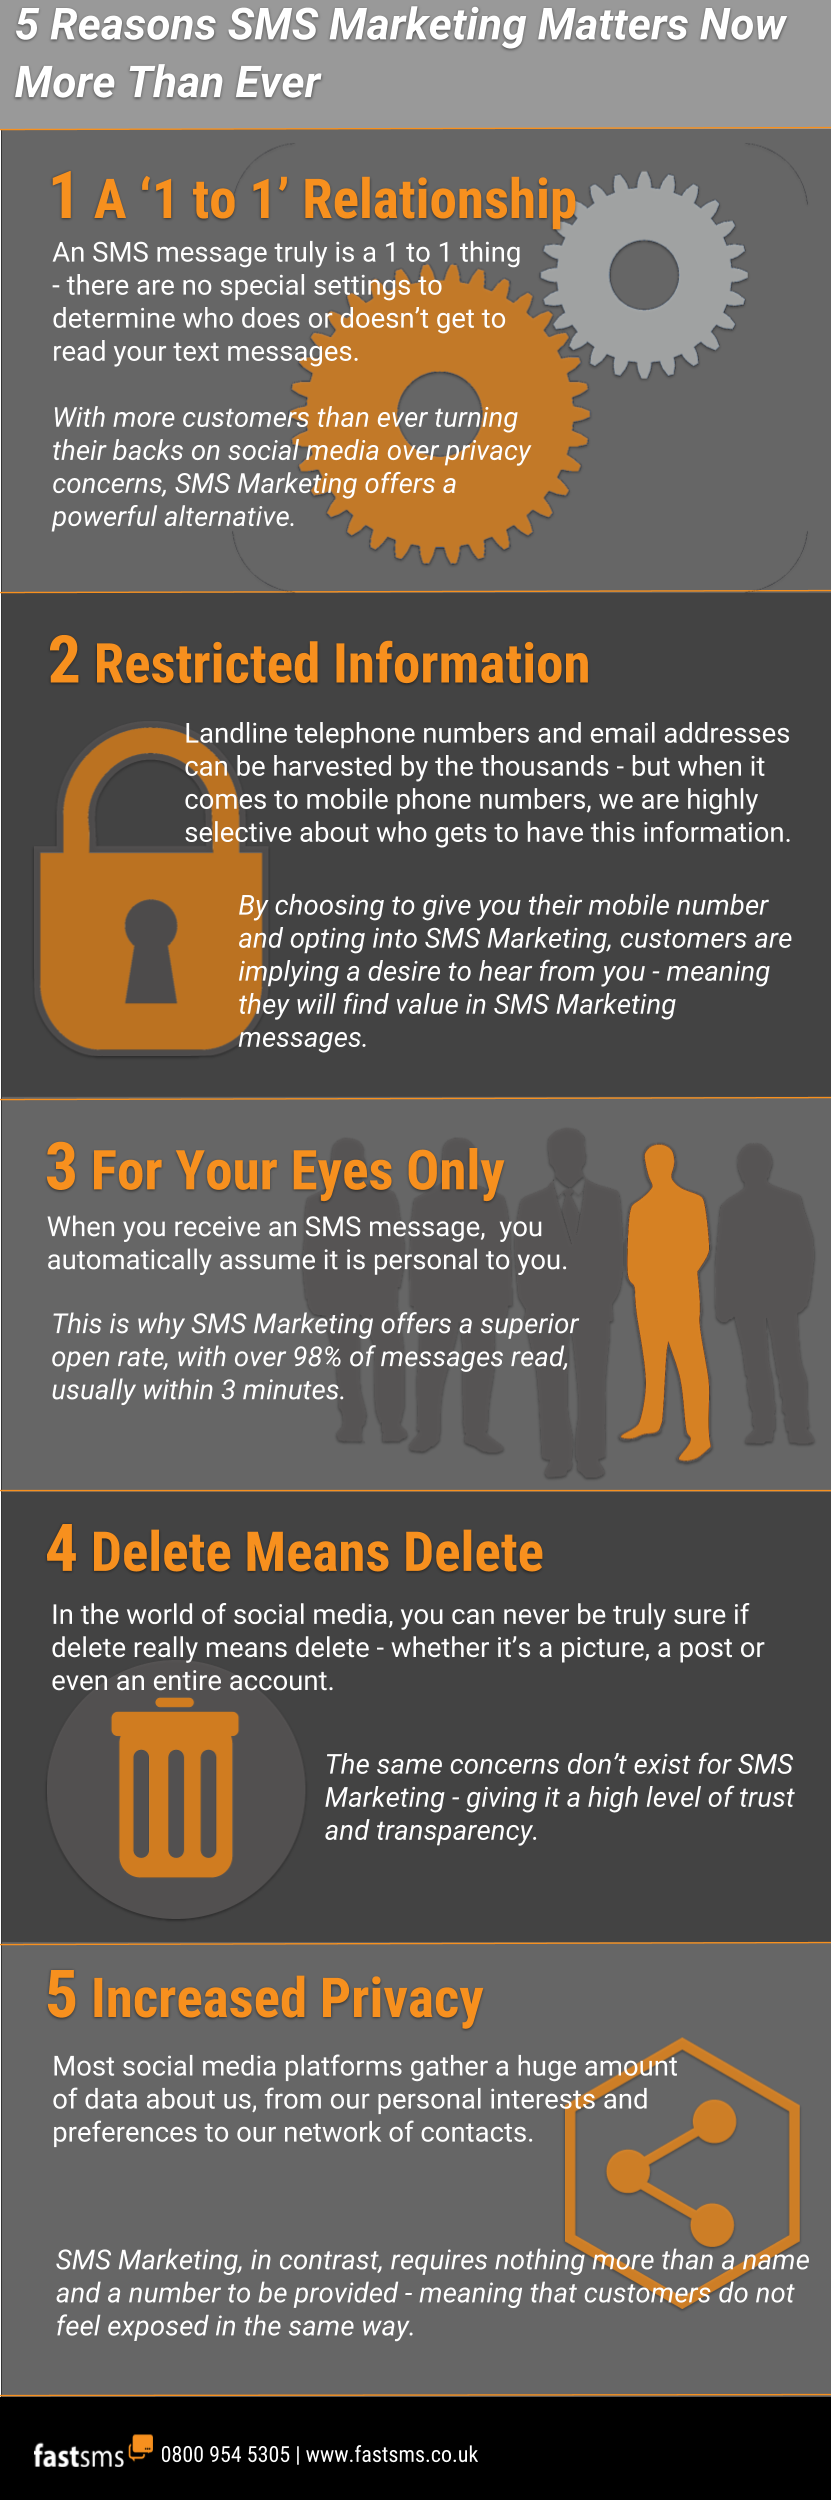 5 Reasons Now is a Great Time to Try SMS Marketing - Infographic